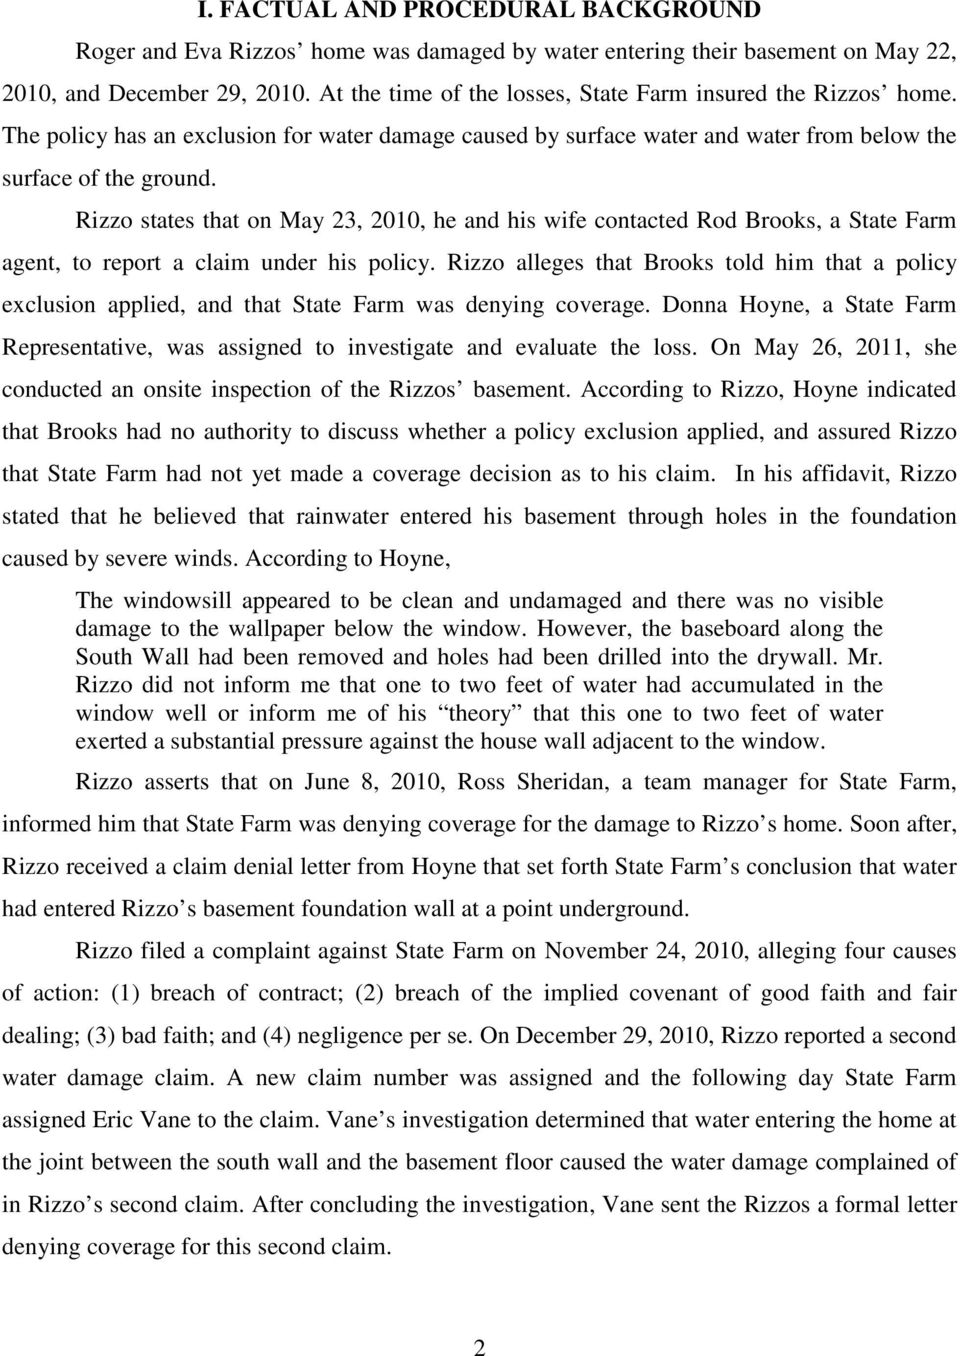 Rizzo states that on May 23, 2010, he and his wife contacted Rod Brooks, a State Farm agent, to report a claim under his policy.